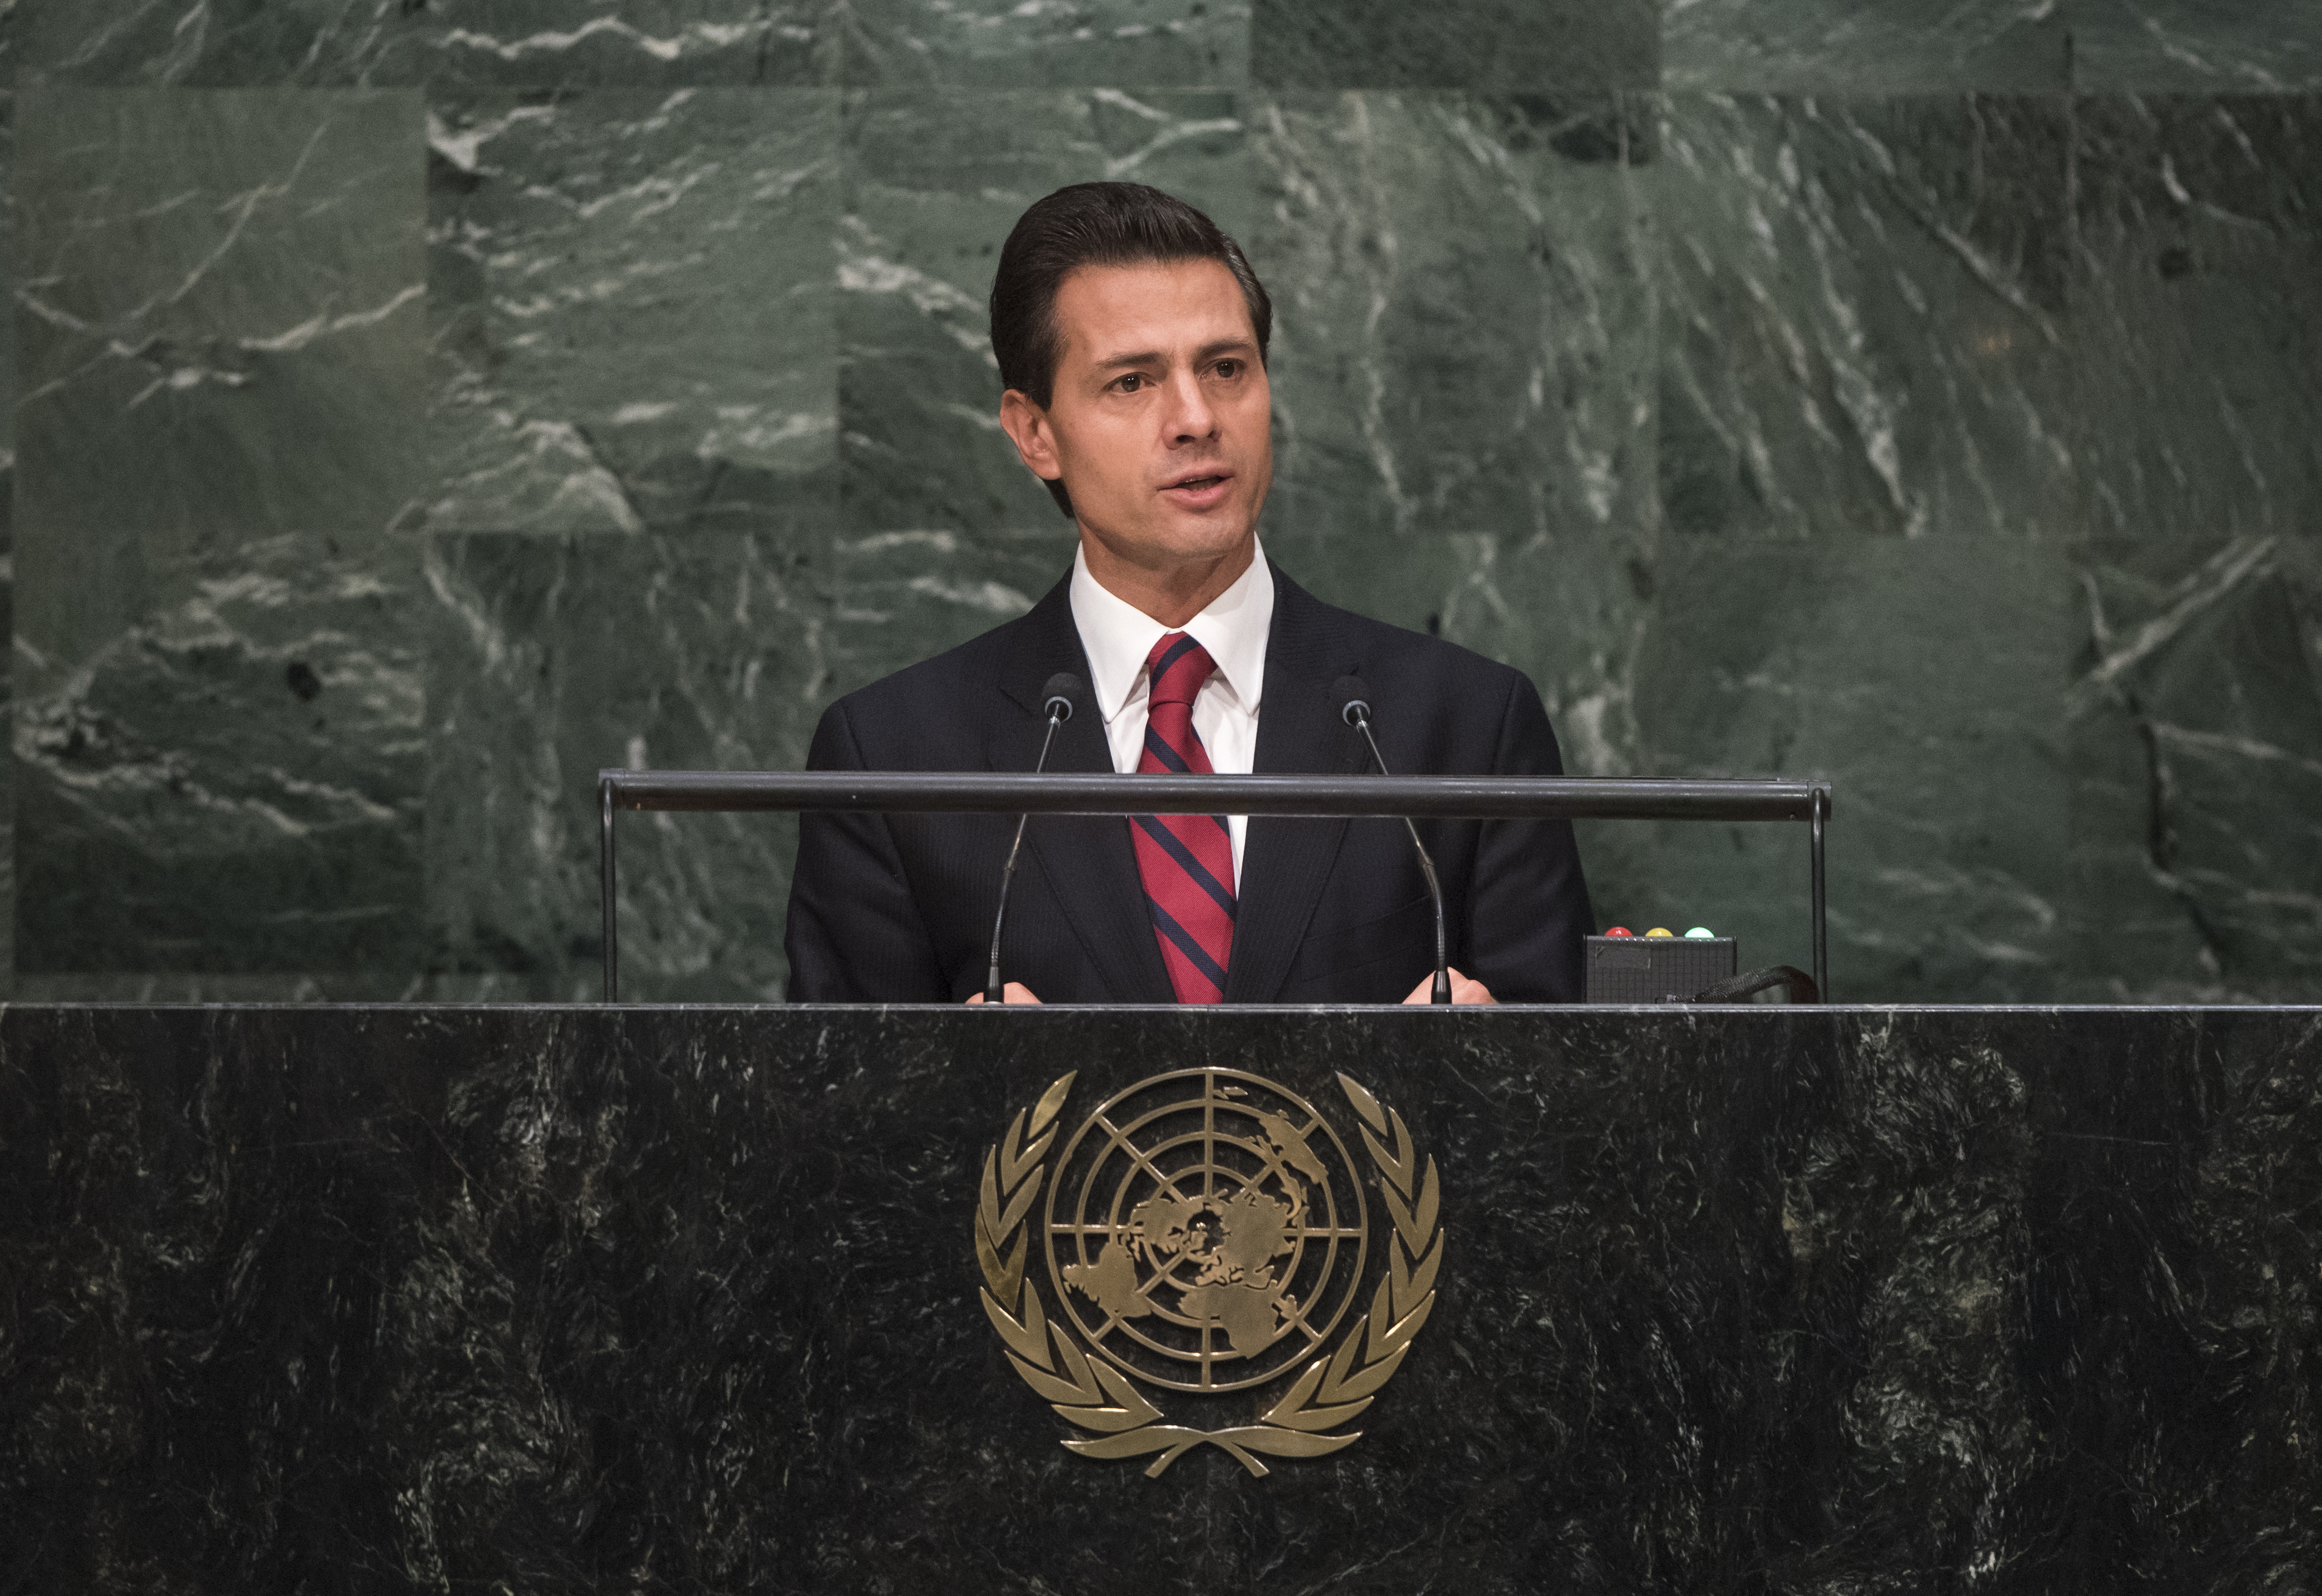 Address by His Excellency Enrique Peña Nieto, President of the United Mexican States